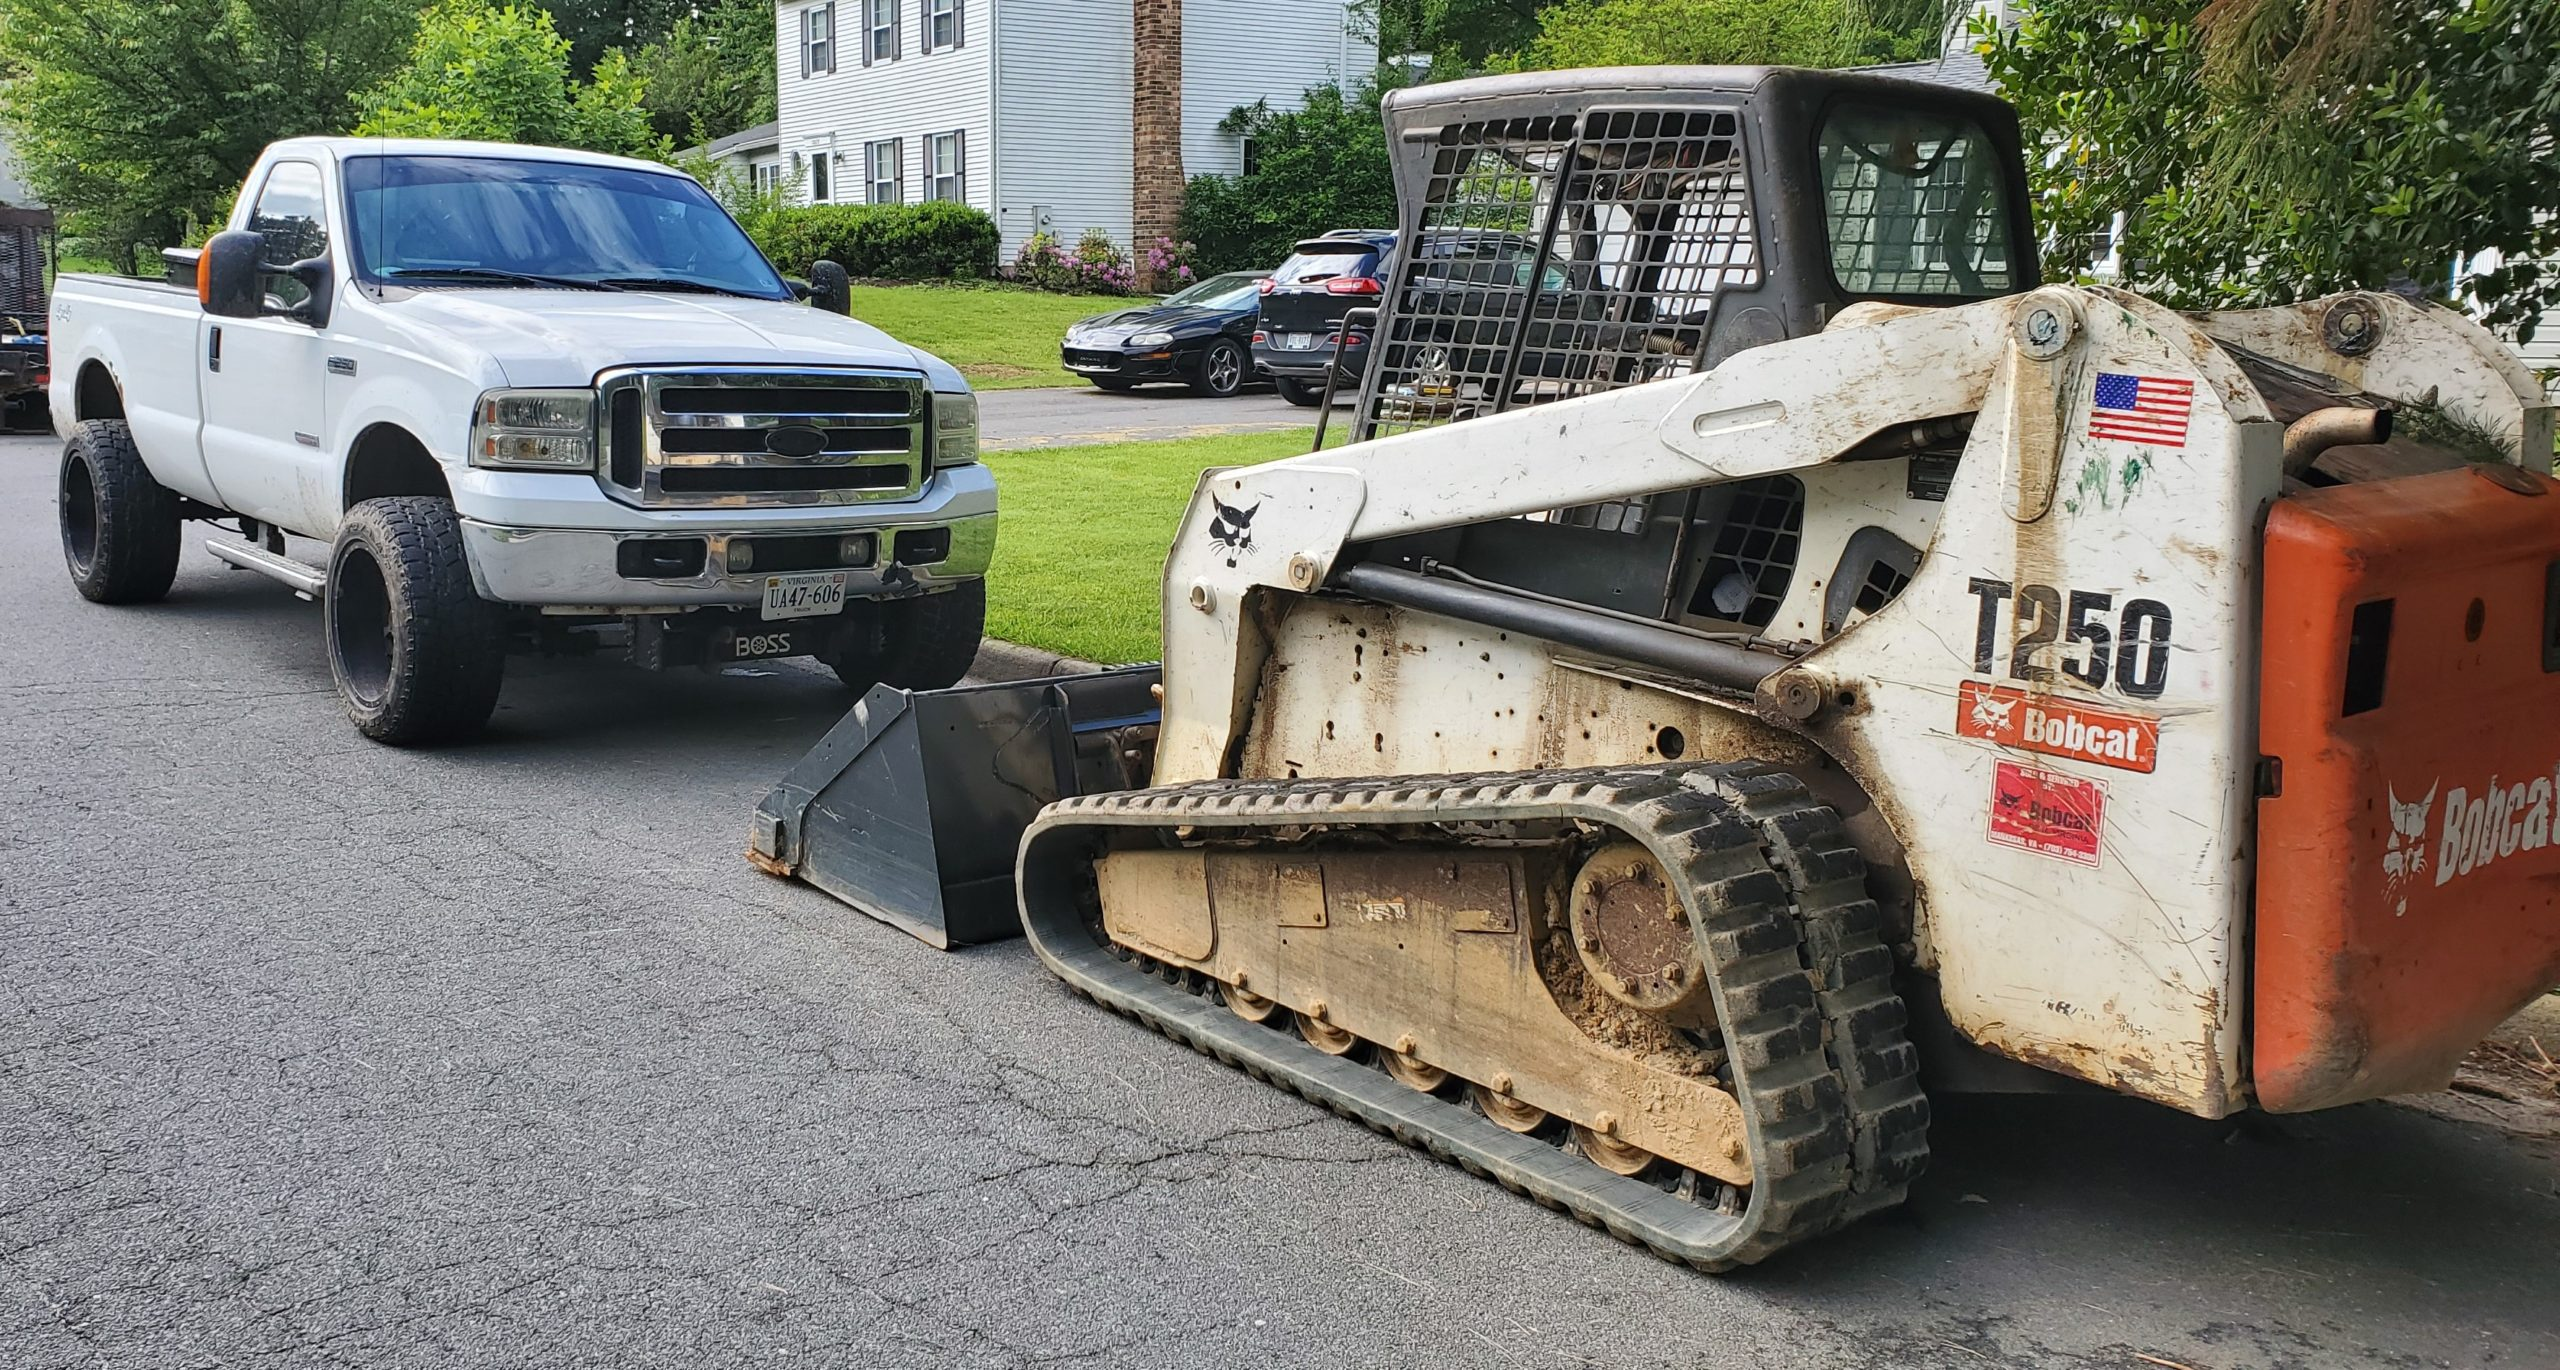 Bobcat skid loader rental with truck and trailer